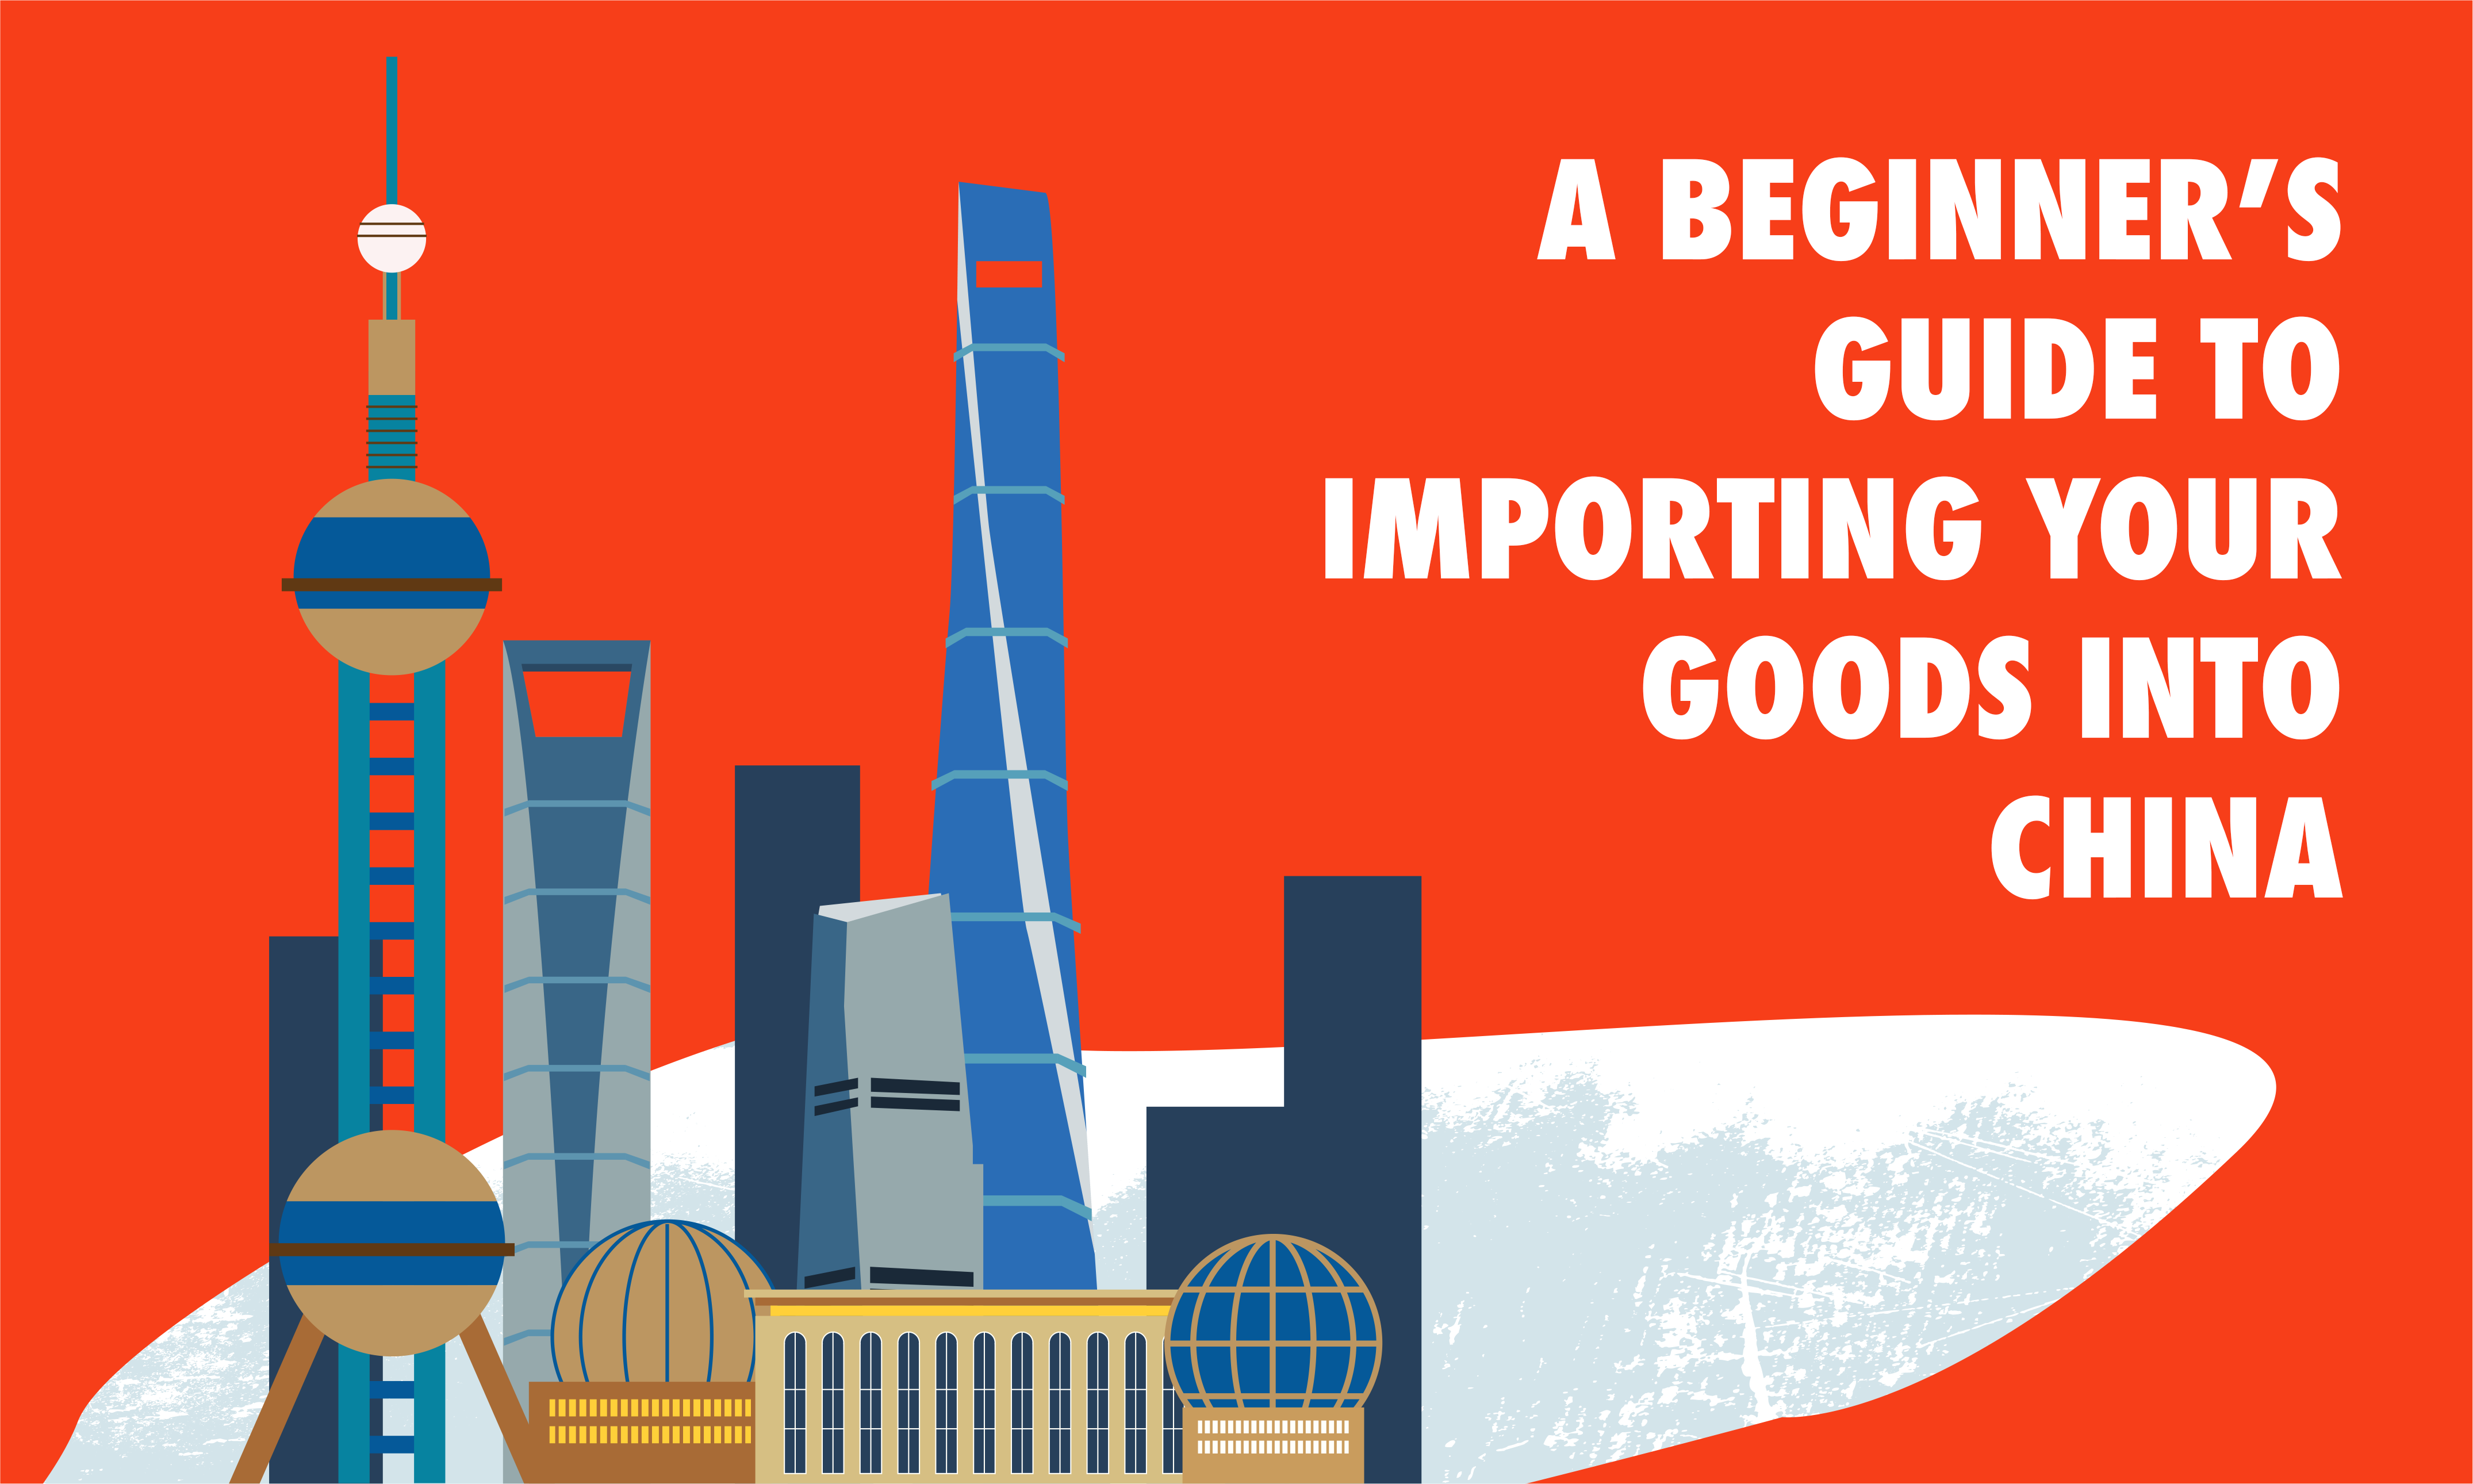 A Beginner's Guide to Exporting Your Goods to China